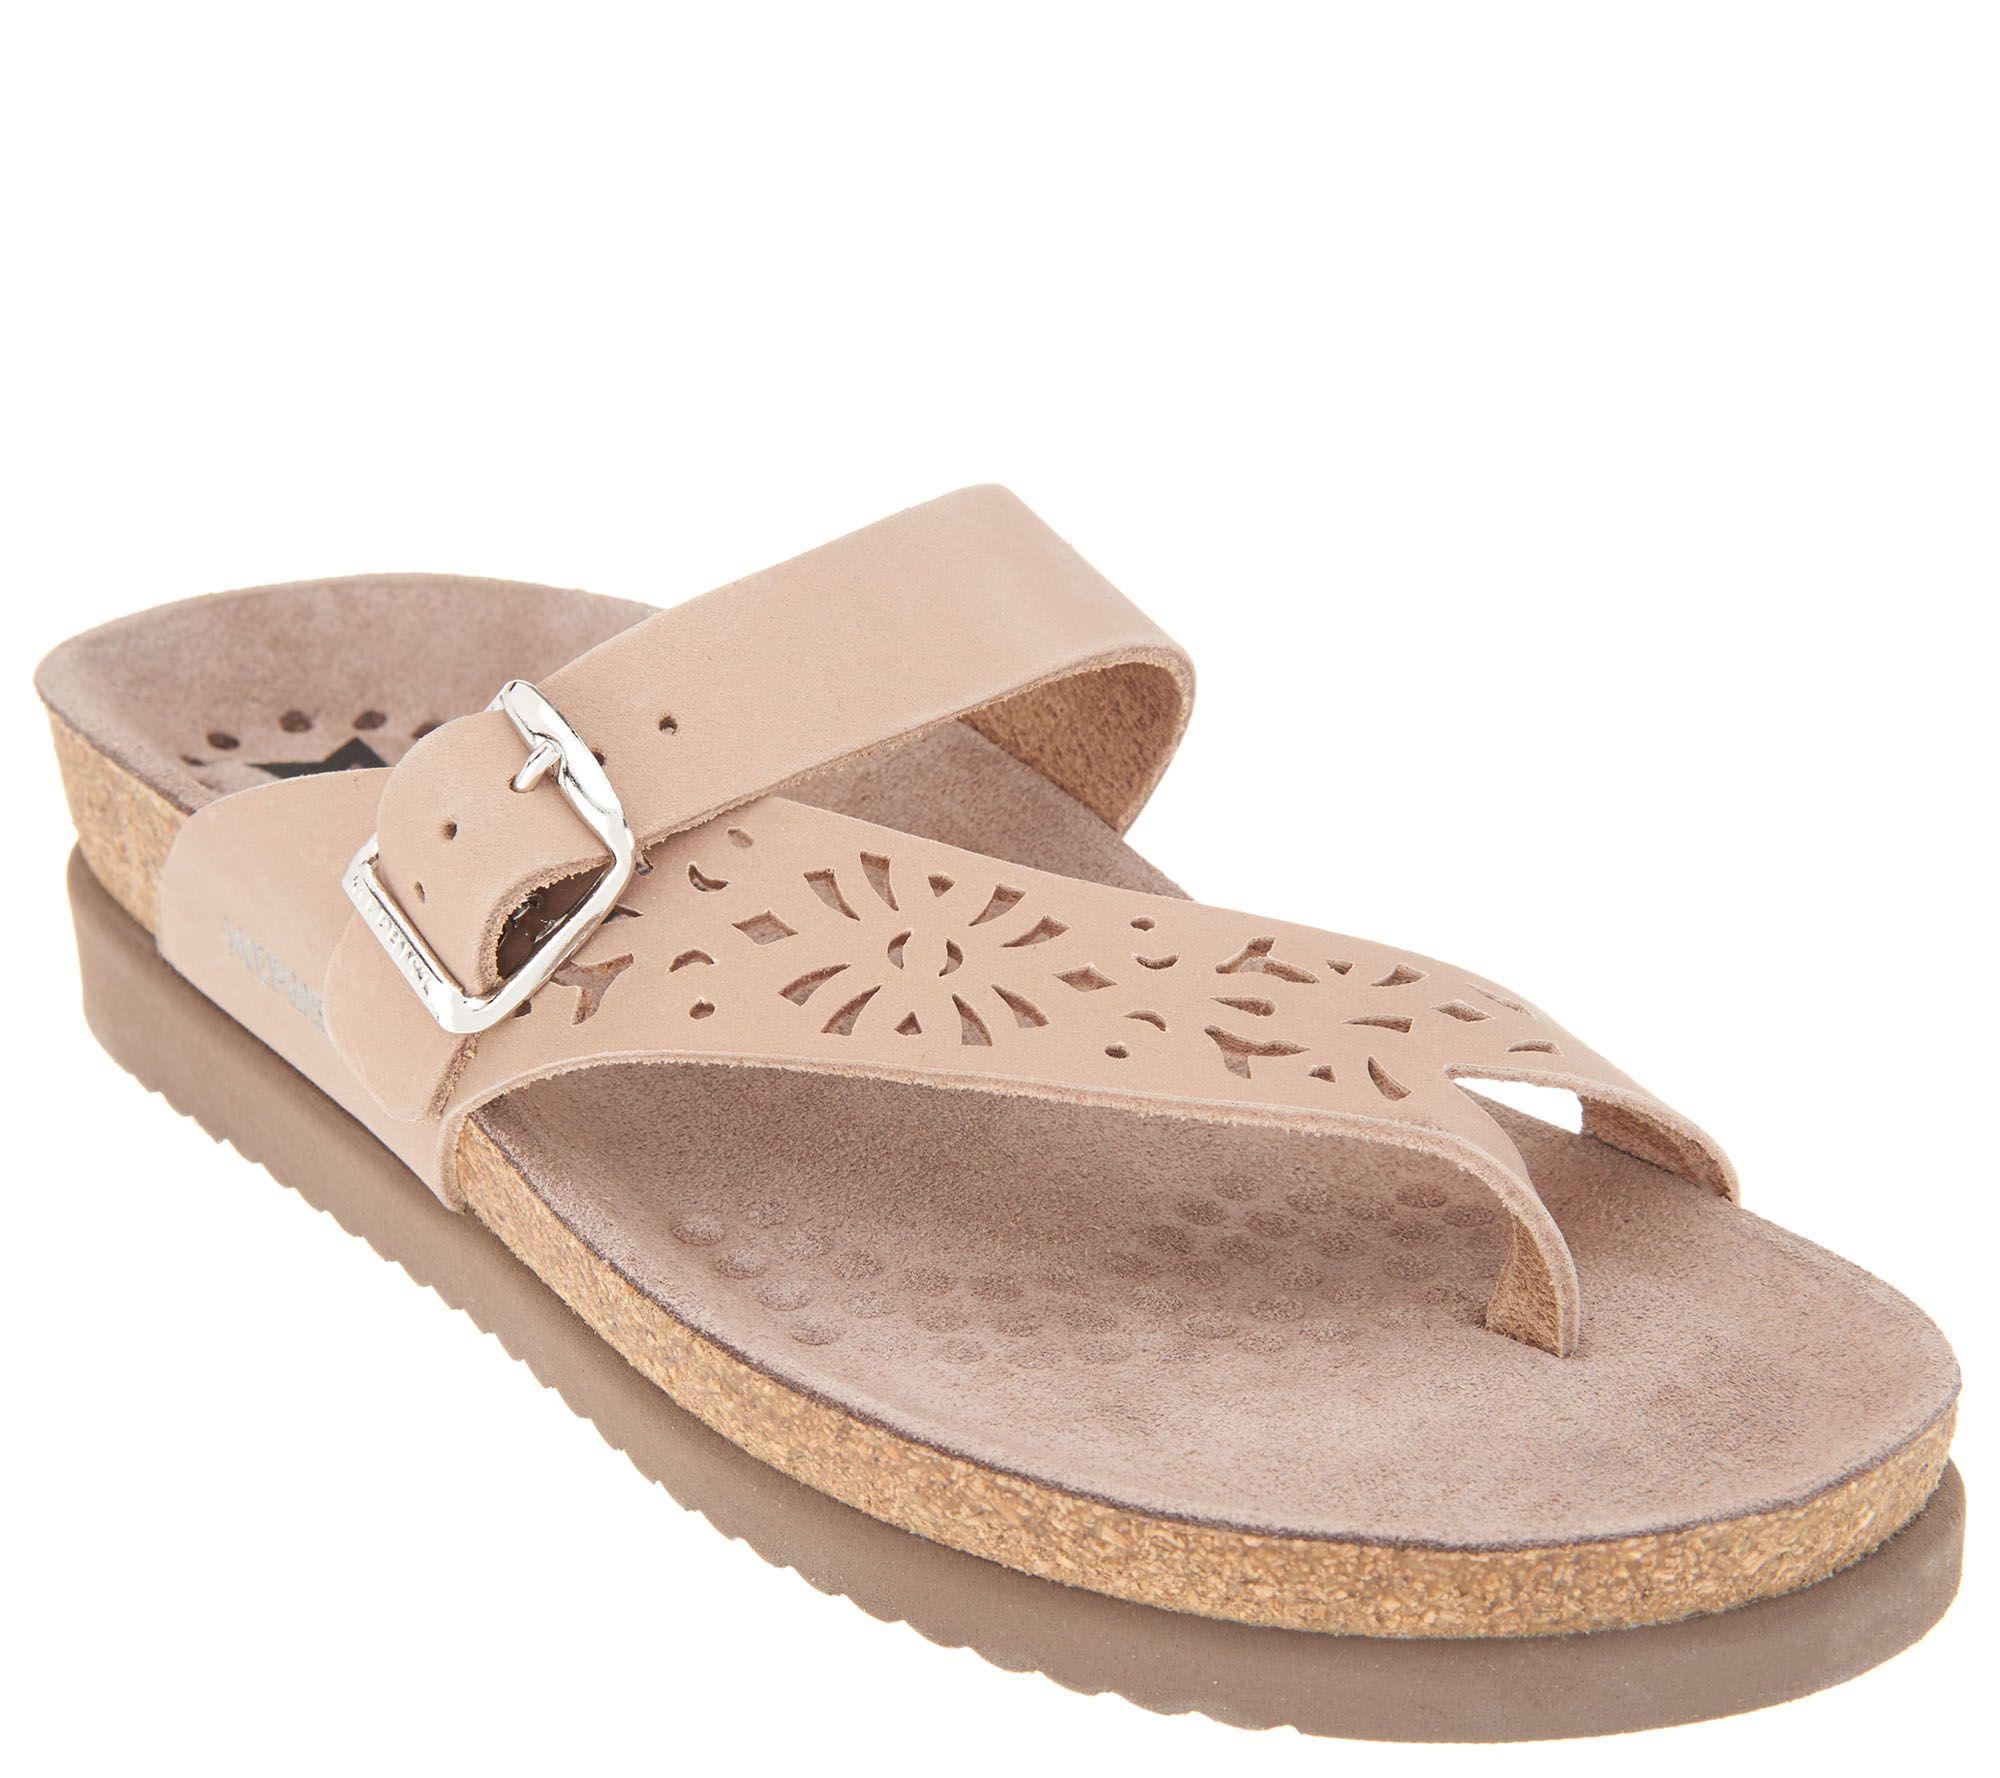 free shipping buy clearance excellent Mephisto Perforated Nubuck Toe Loop Sandals - Helen Perf buy cheap limited edition discount clearance store Cxf9q